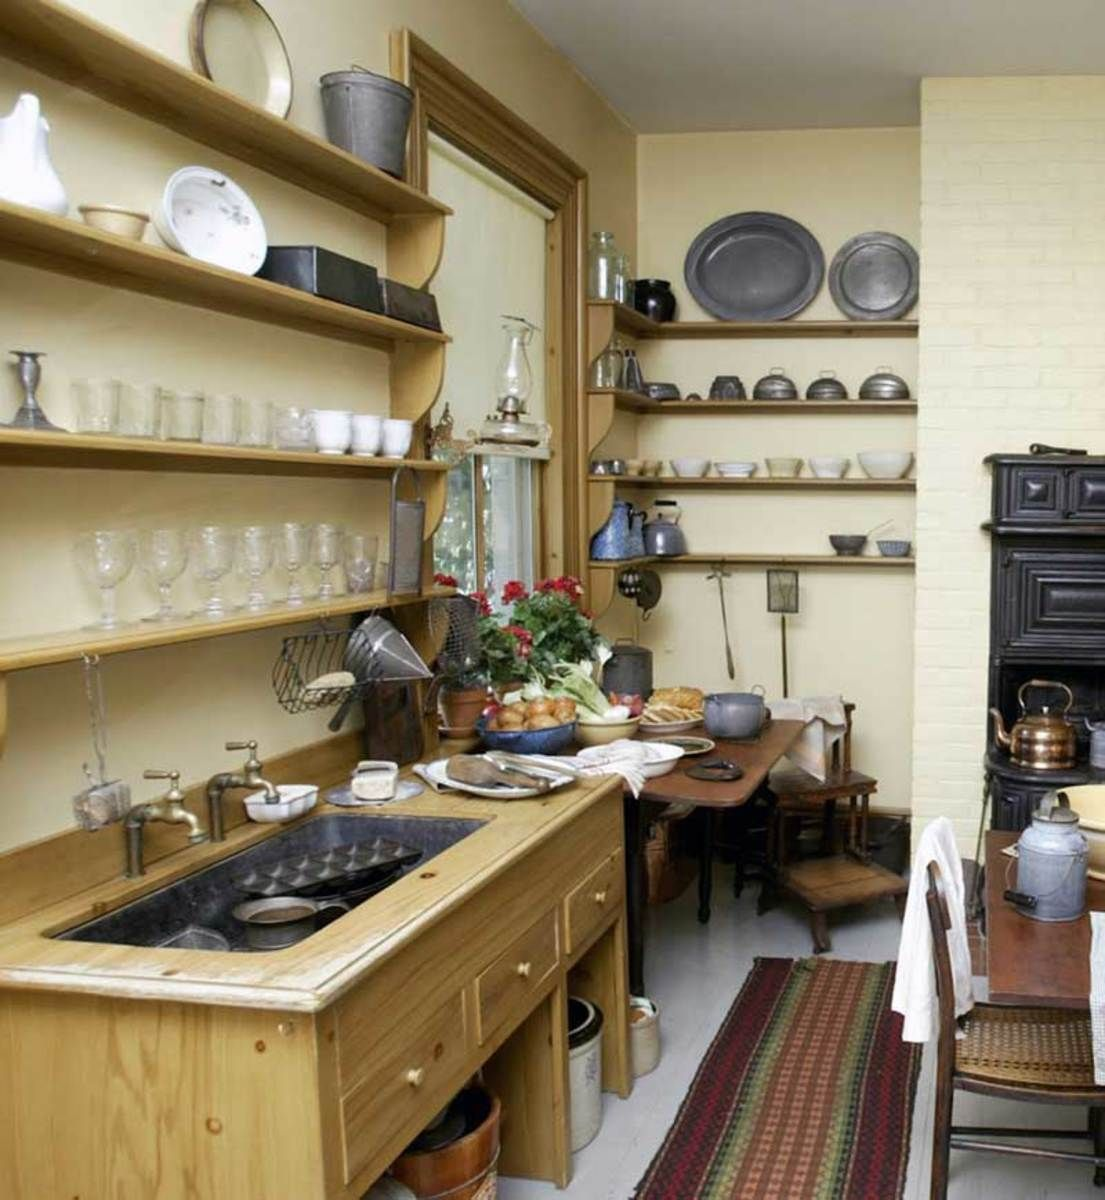 Author Harriet Beecher Stowe Built In A Sink Cabinet With Hot And Cold Taps  In Her Hartford Kitchen; She Also Added A Side Counter And Three Ample  Drawers.